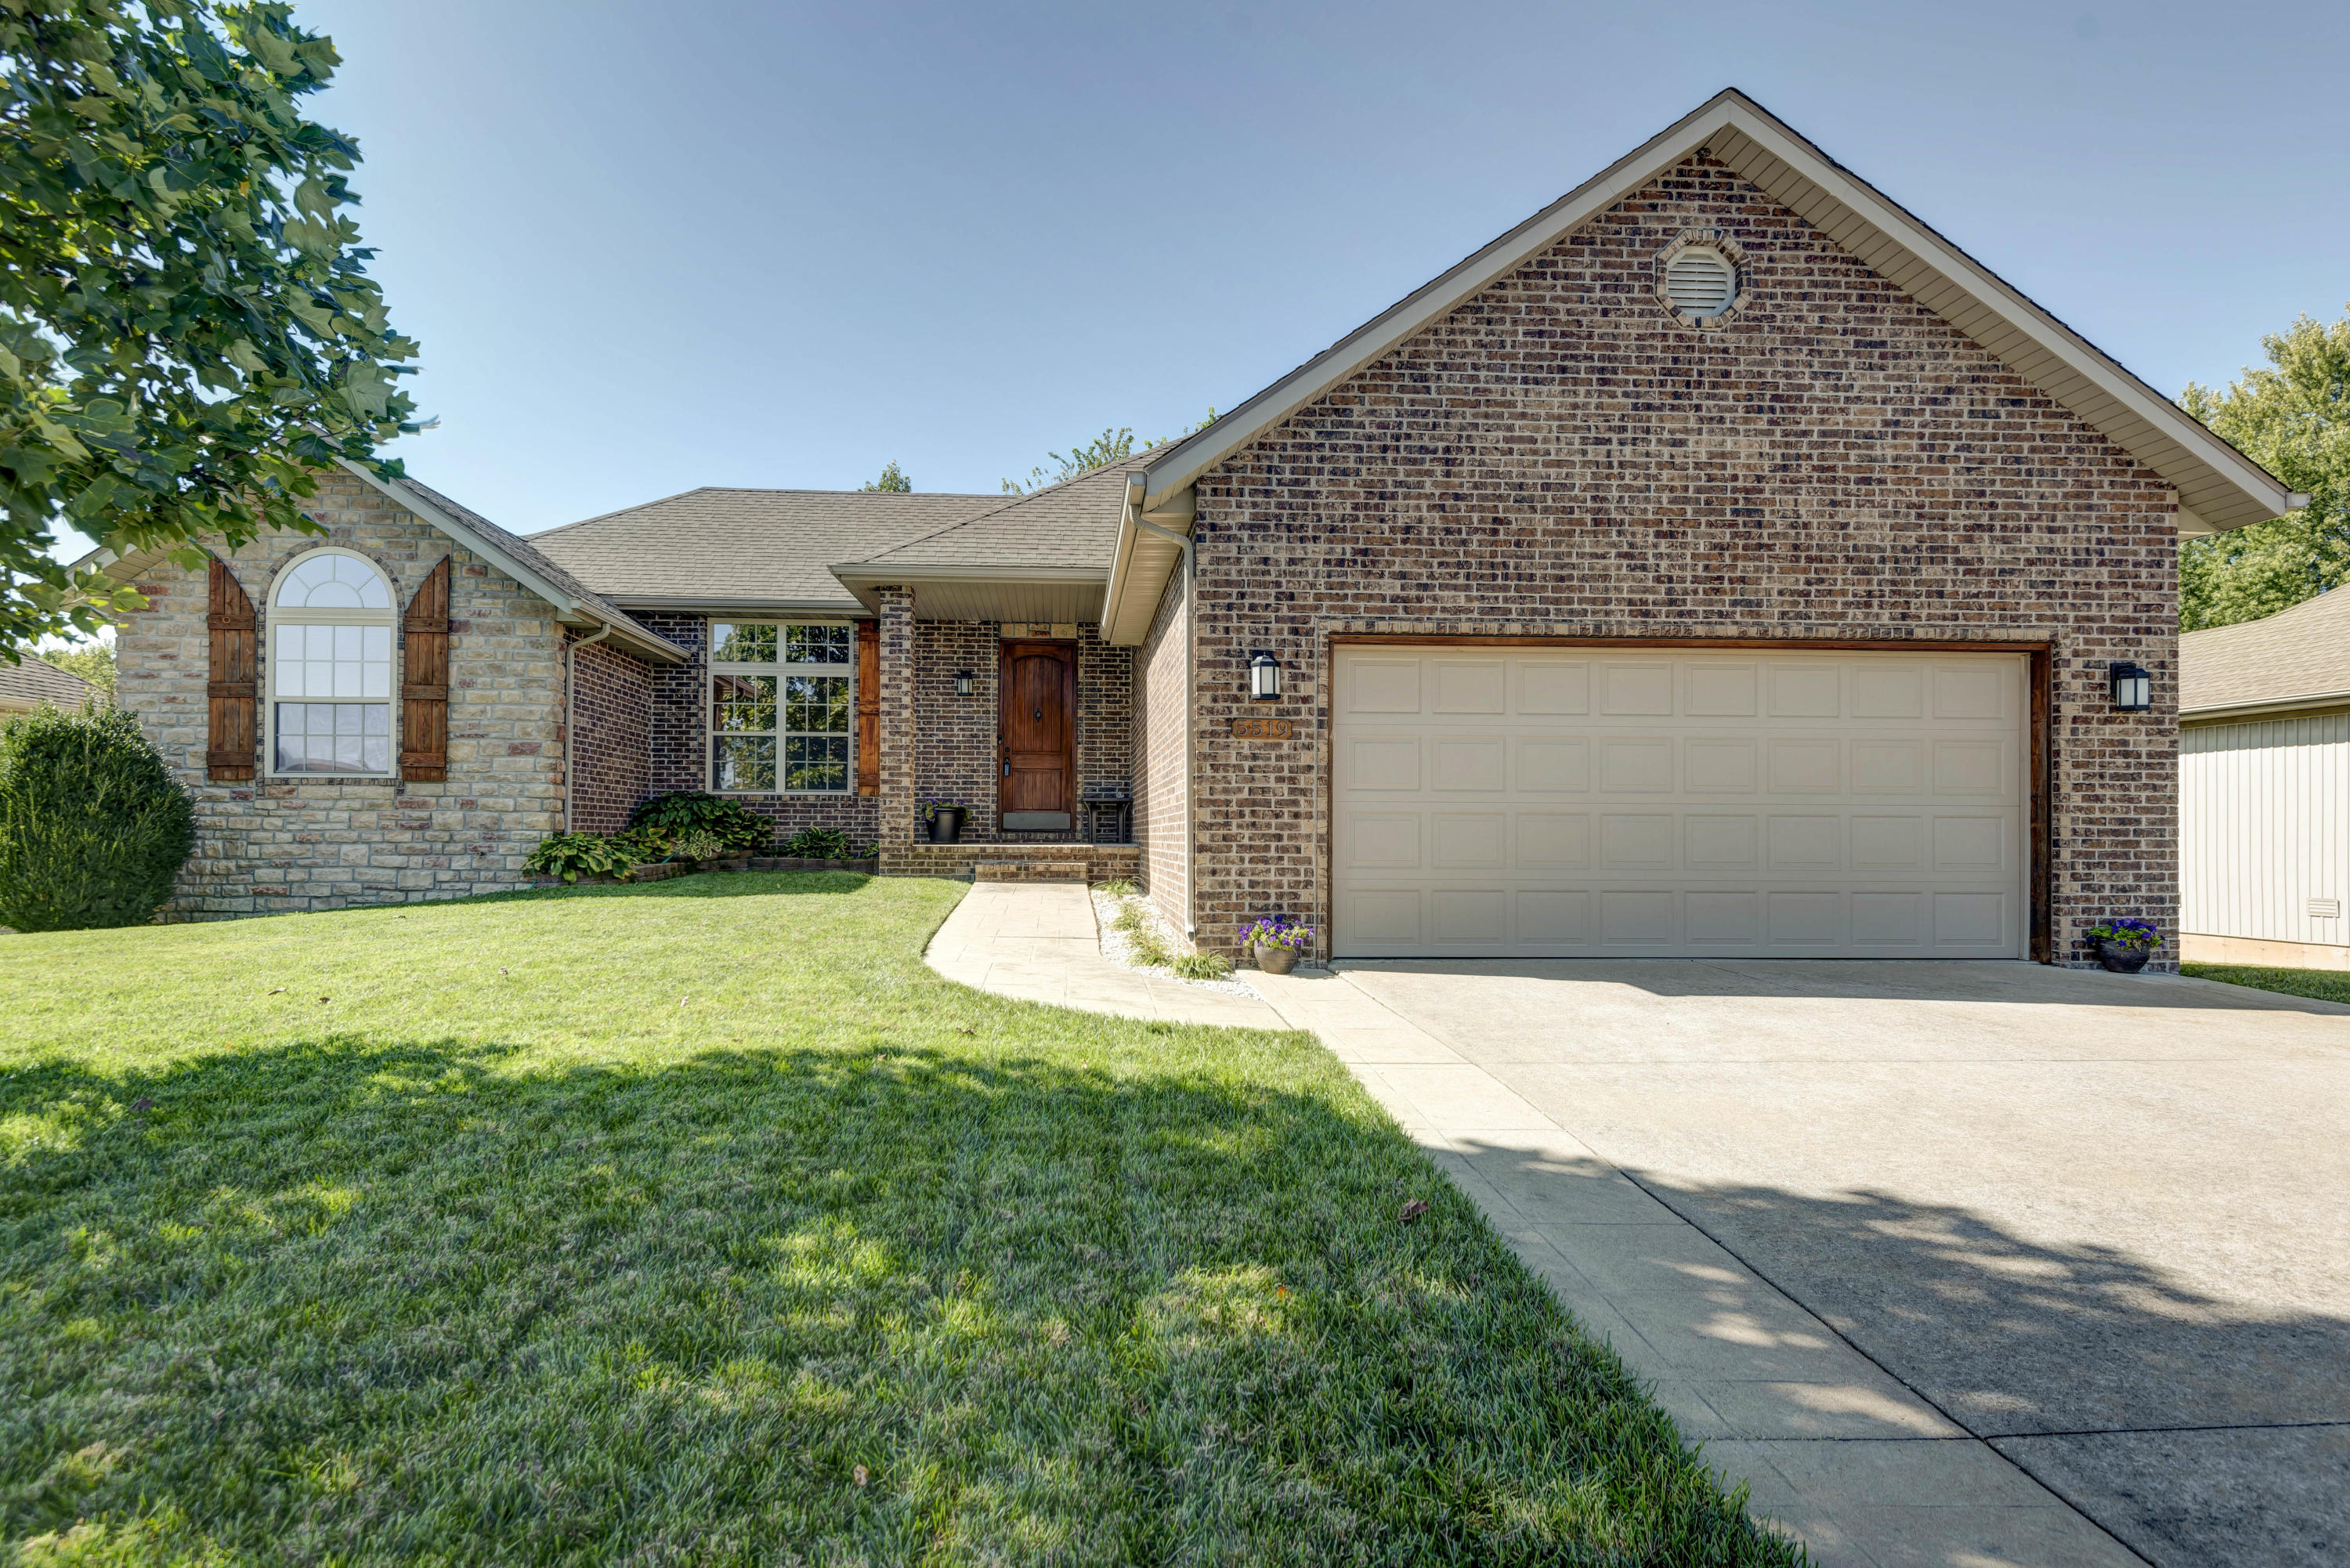 5519 South Cloverdale Lane Battlefield, MO 65619